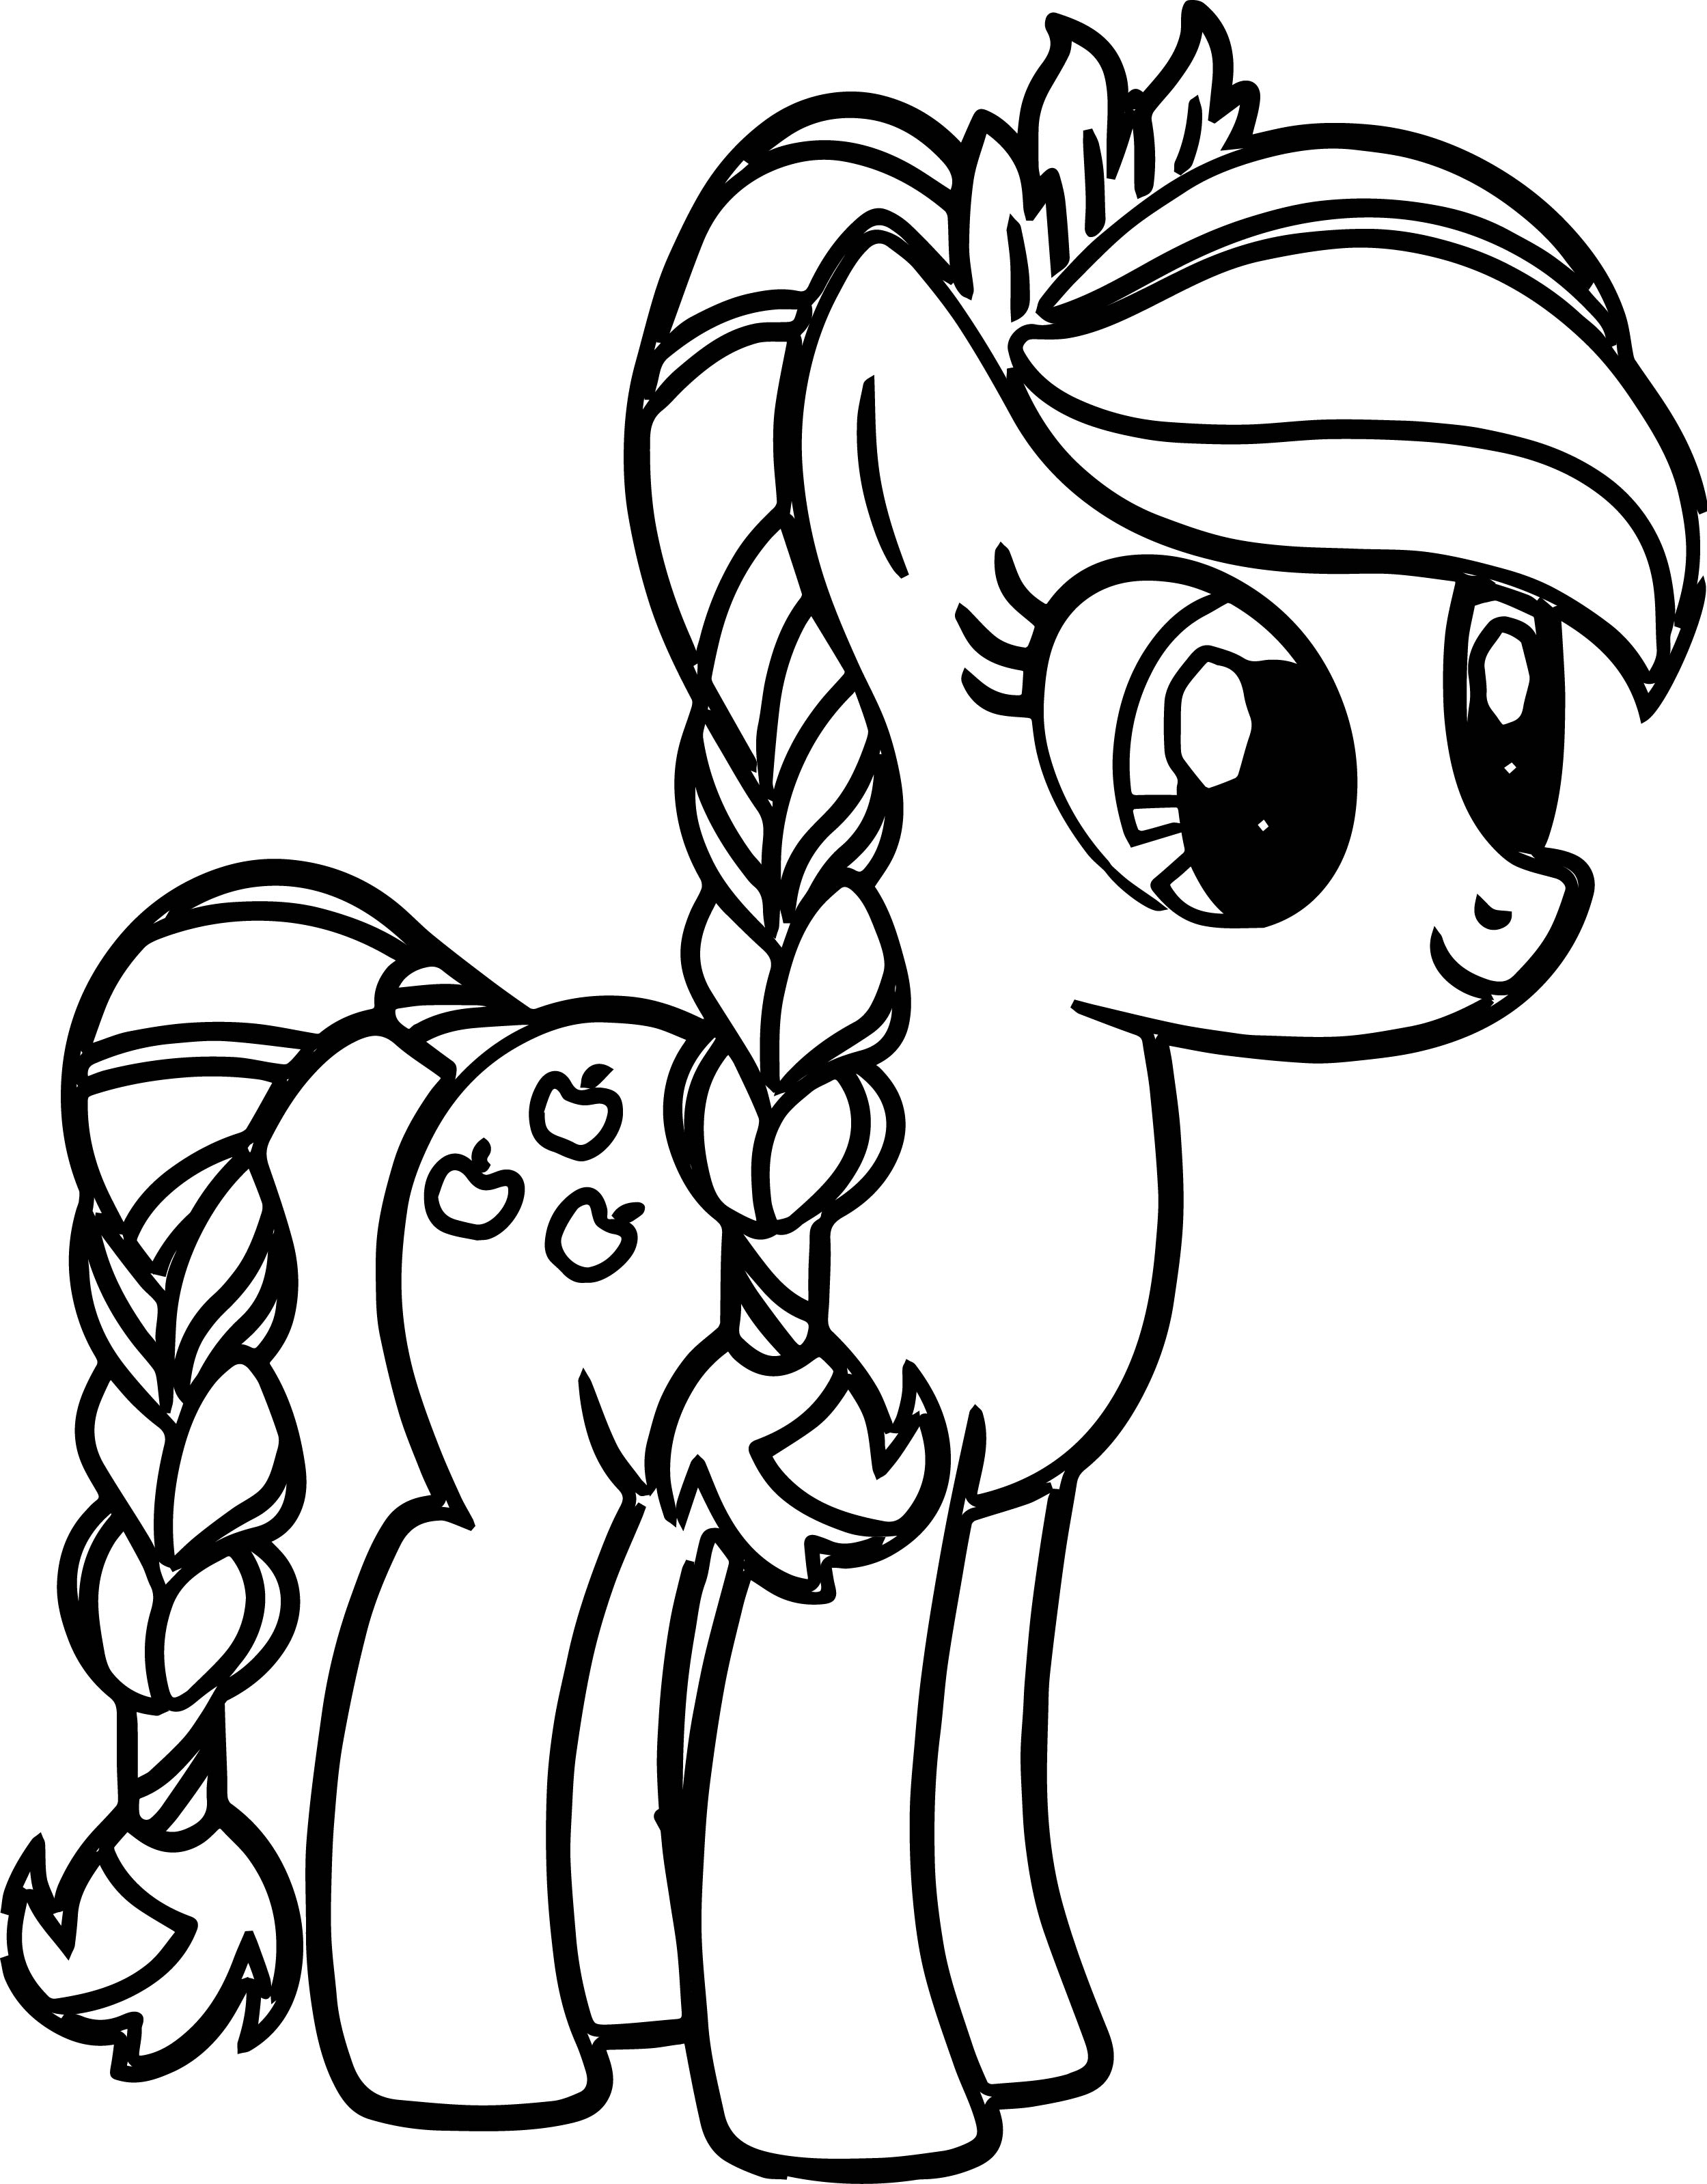 My little pony coloring pages youtube - My Little Pony Games Coloring Pages In Color Pony Cartoon My Little Pony Coloring Pages